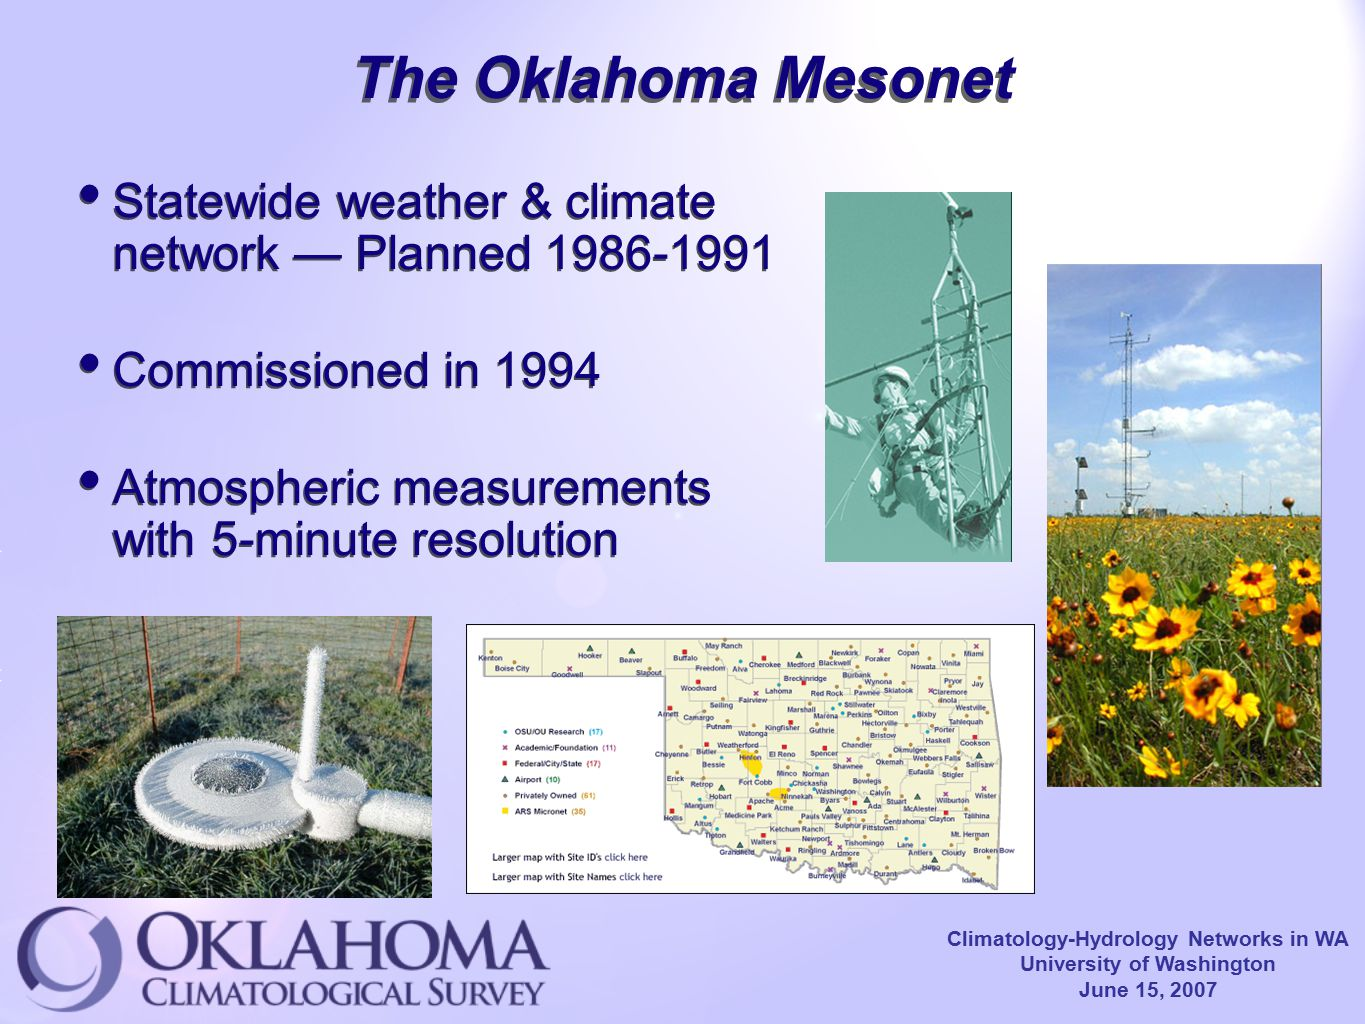 Climatology-Hydrology Networks in WA University of Washington June 15, 2007 The Oklahoma Mesonet Statewide weather & climate network — Planned 1986-1991 Commissioned in 1994 Atmospheric measurements with 5-minute resolution Statewide weather & climate network — Planned 1986-1991 Commissioned in 1994 Atmospheric measurements with 5-minute resolution